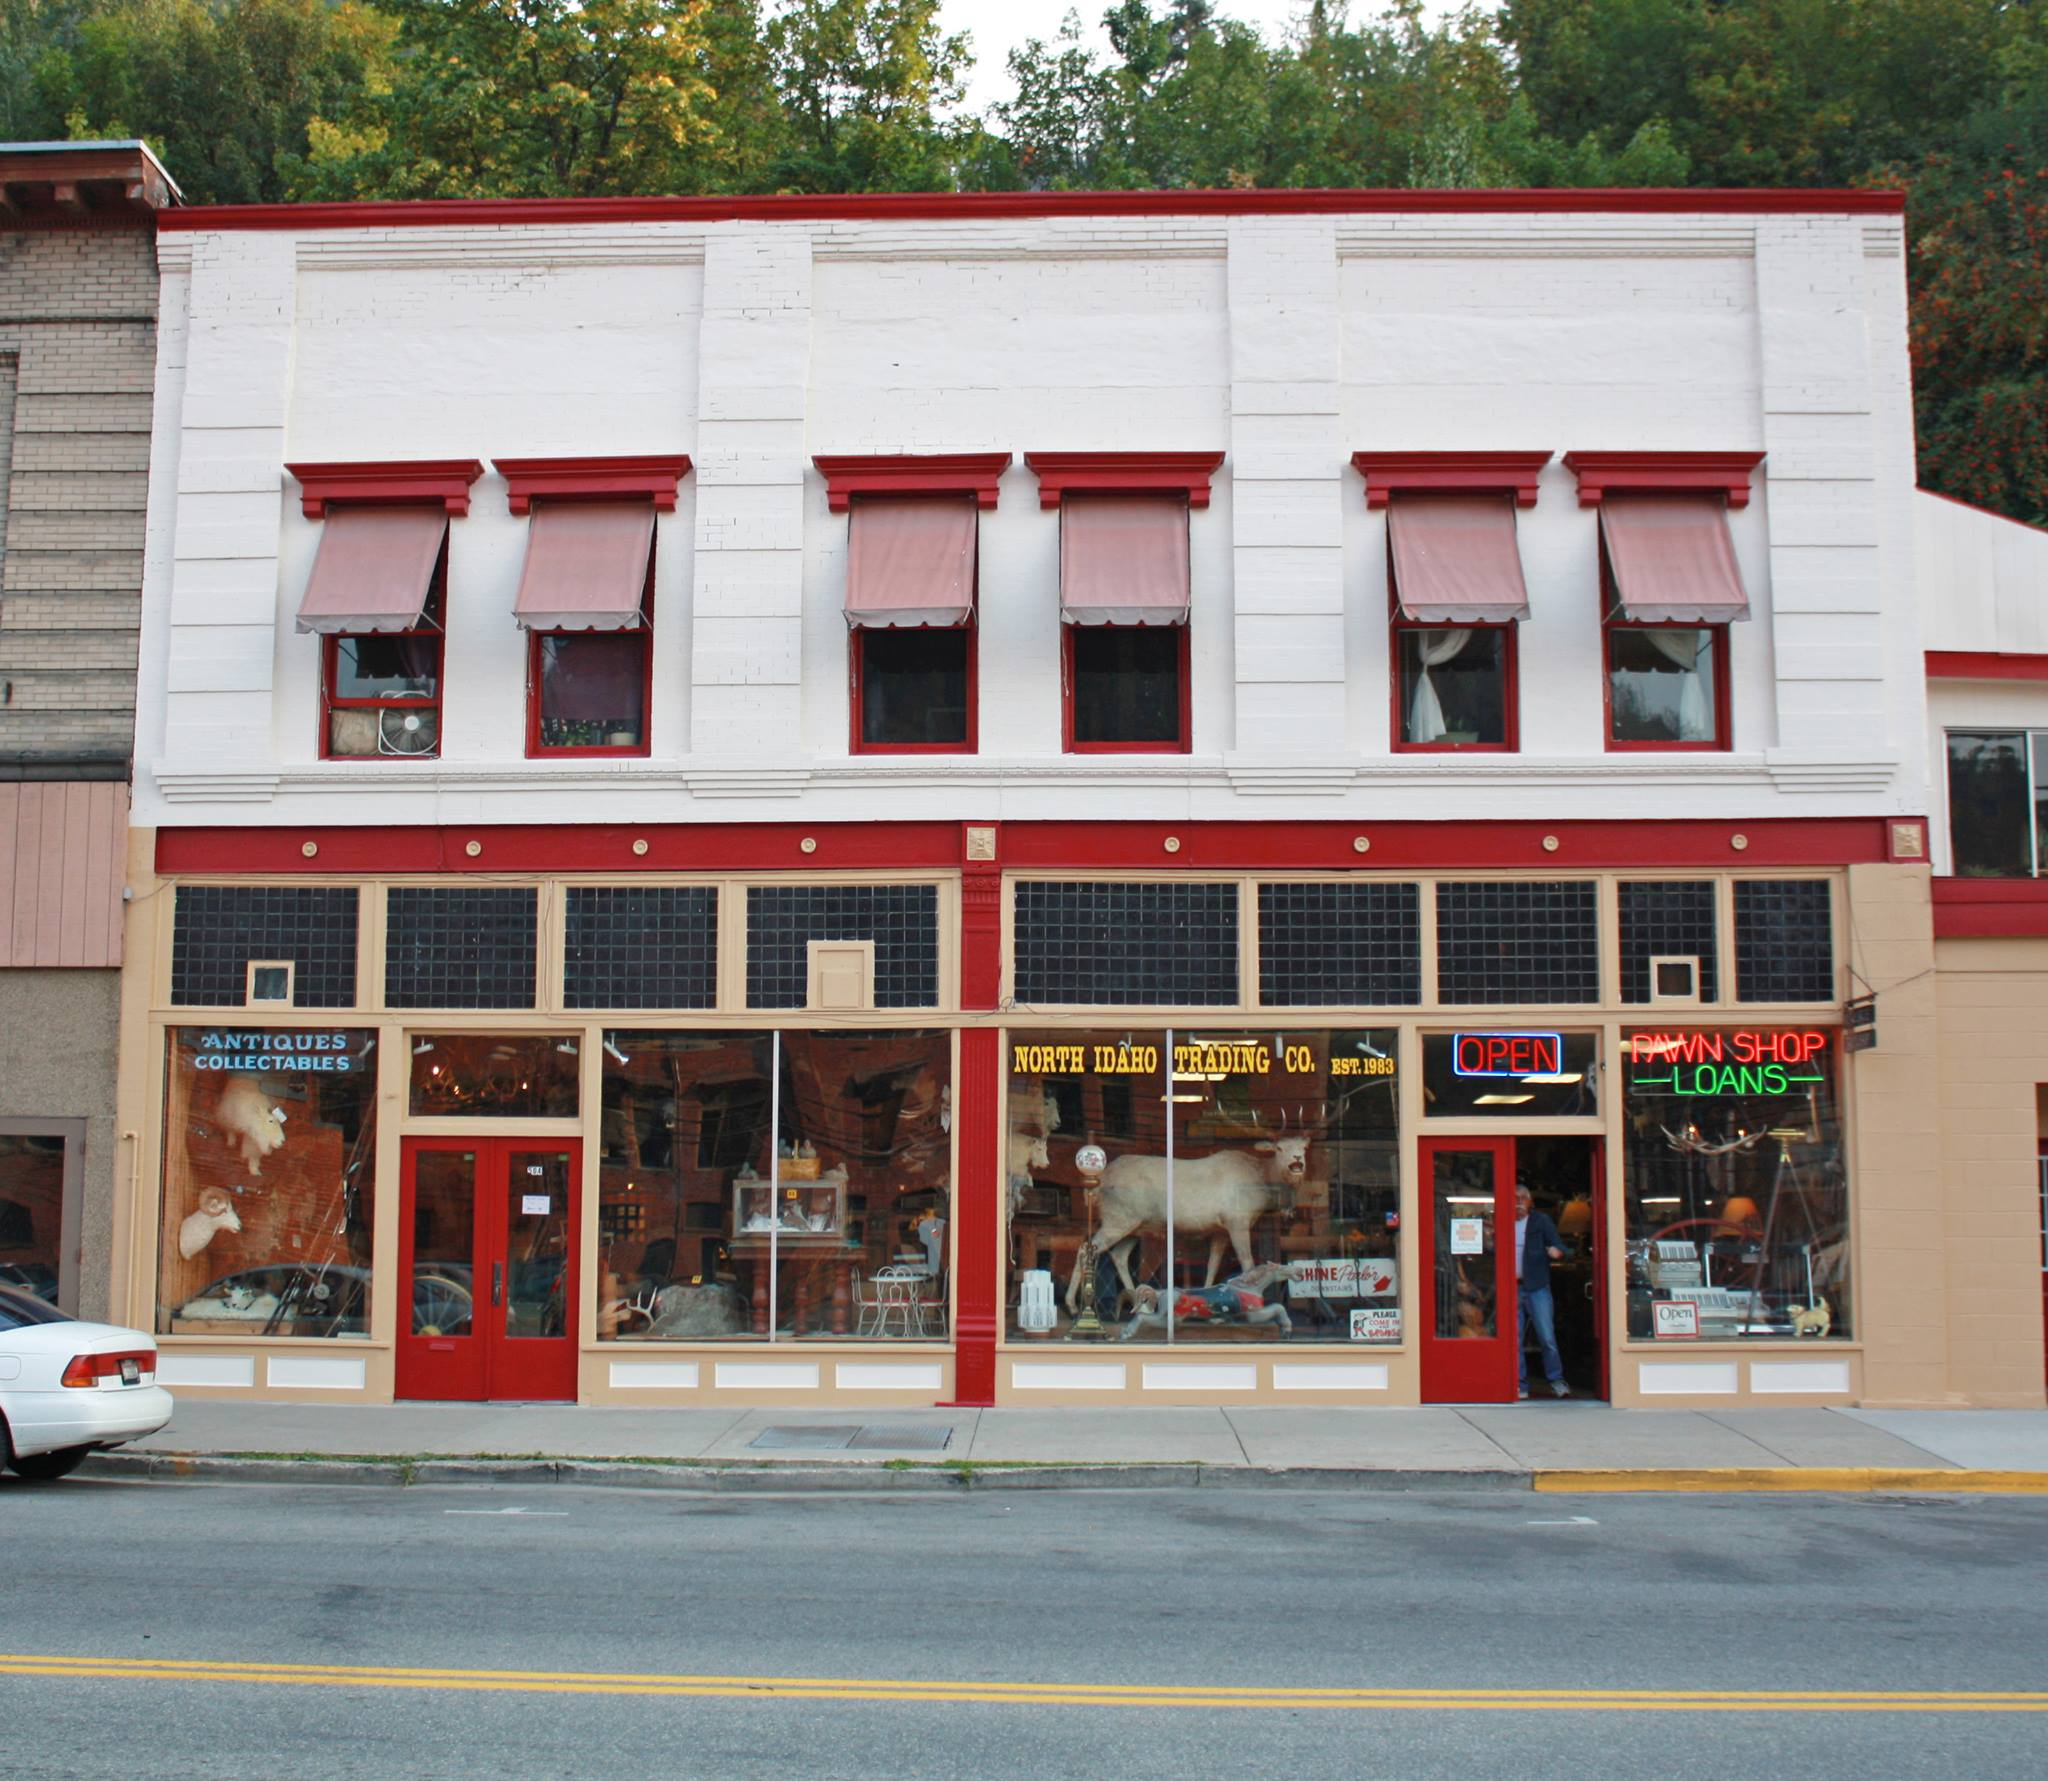 Known As The Weirdest Little Shop In The Northwest, Visit The North Idaho Trading Company